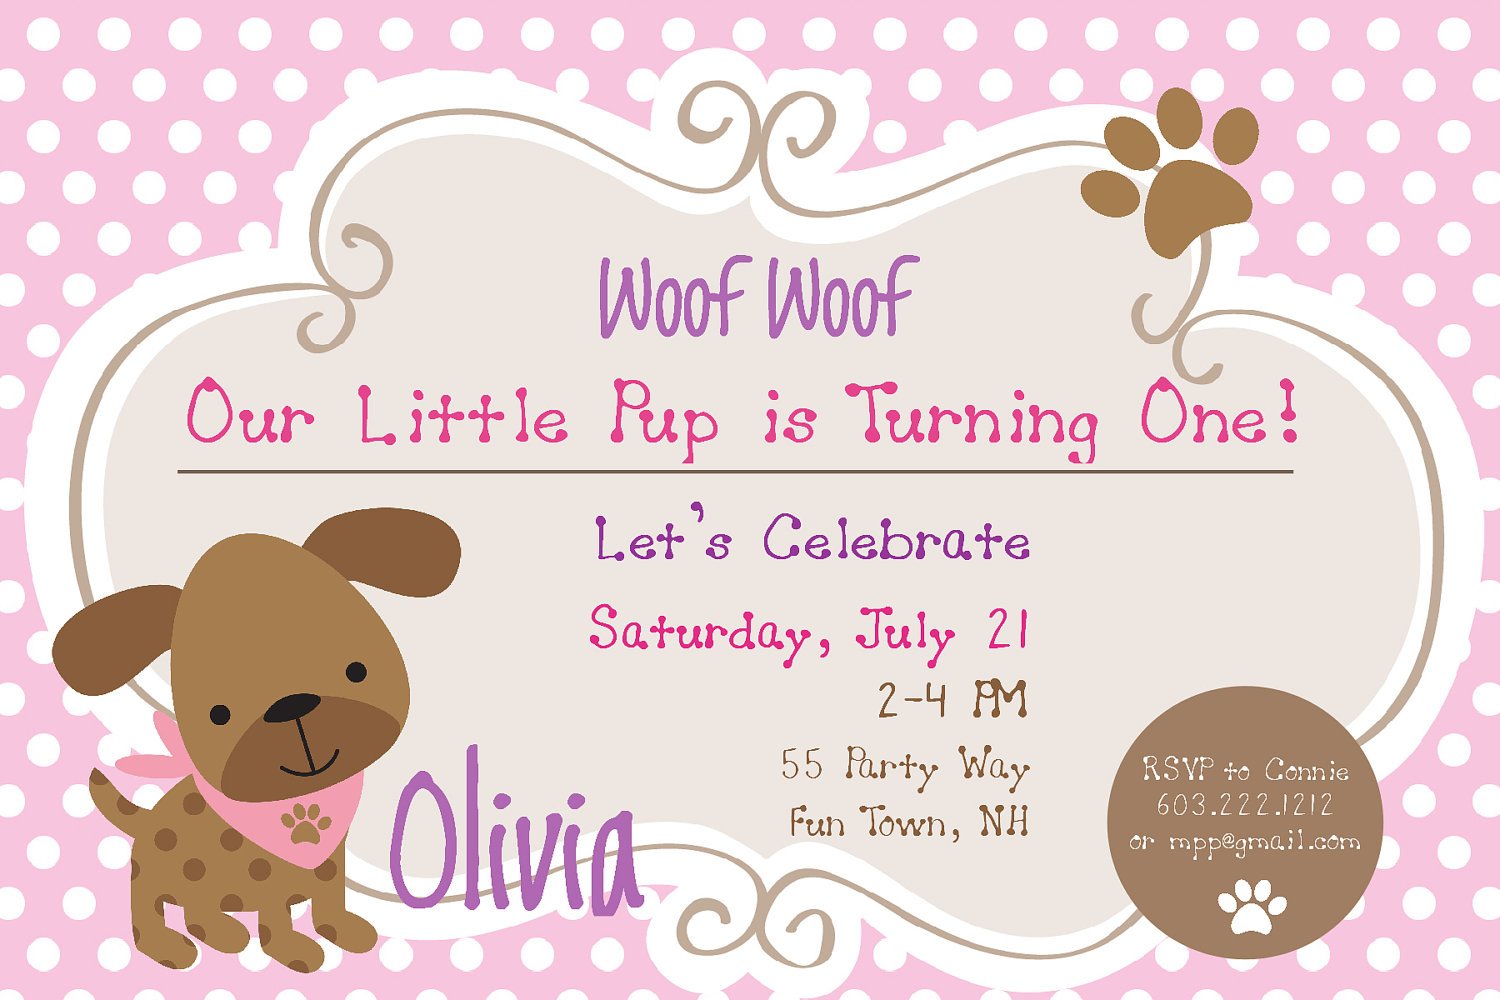 puppy birthday party invitations  mickey mouse invitations templates, Party invitations